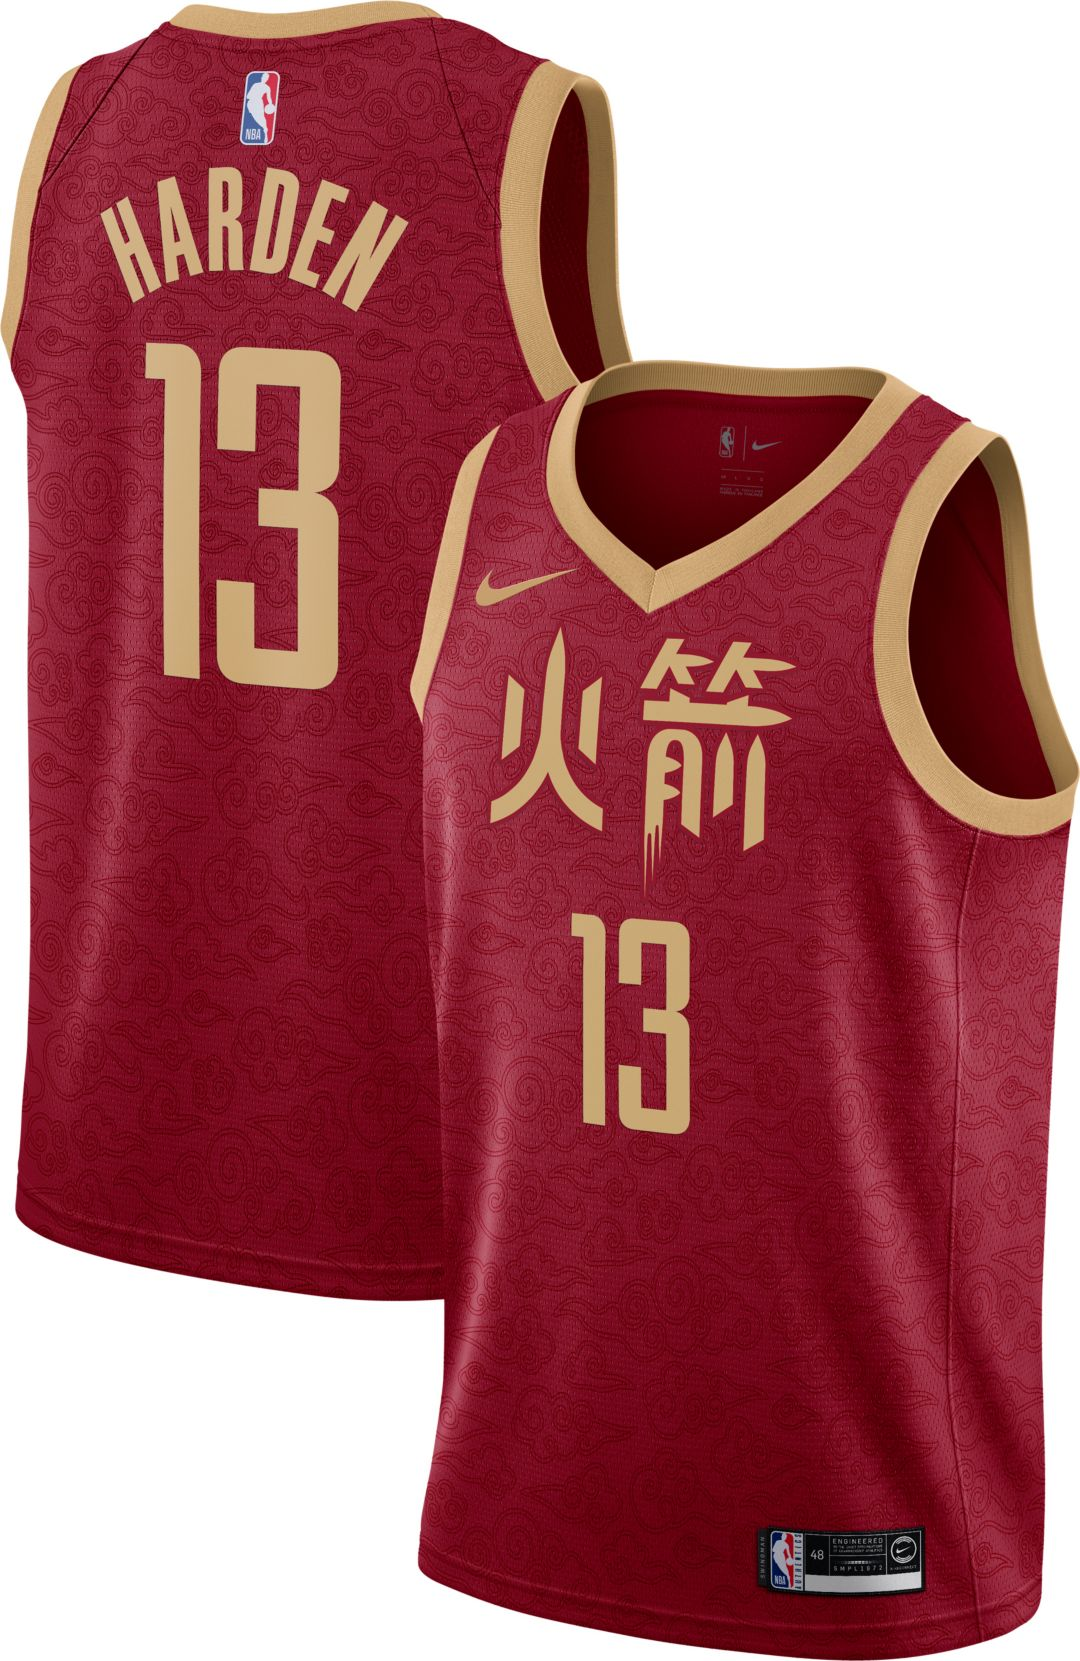 98a9bed09 Nike Men's Houston Rockets James Harden Dri-FIT City Edition Swingman Jersey.  noImageFound. Previous